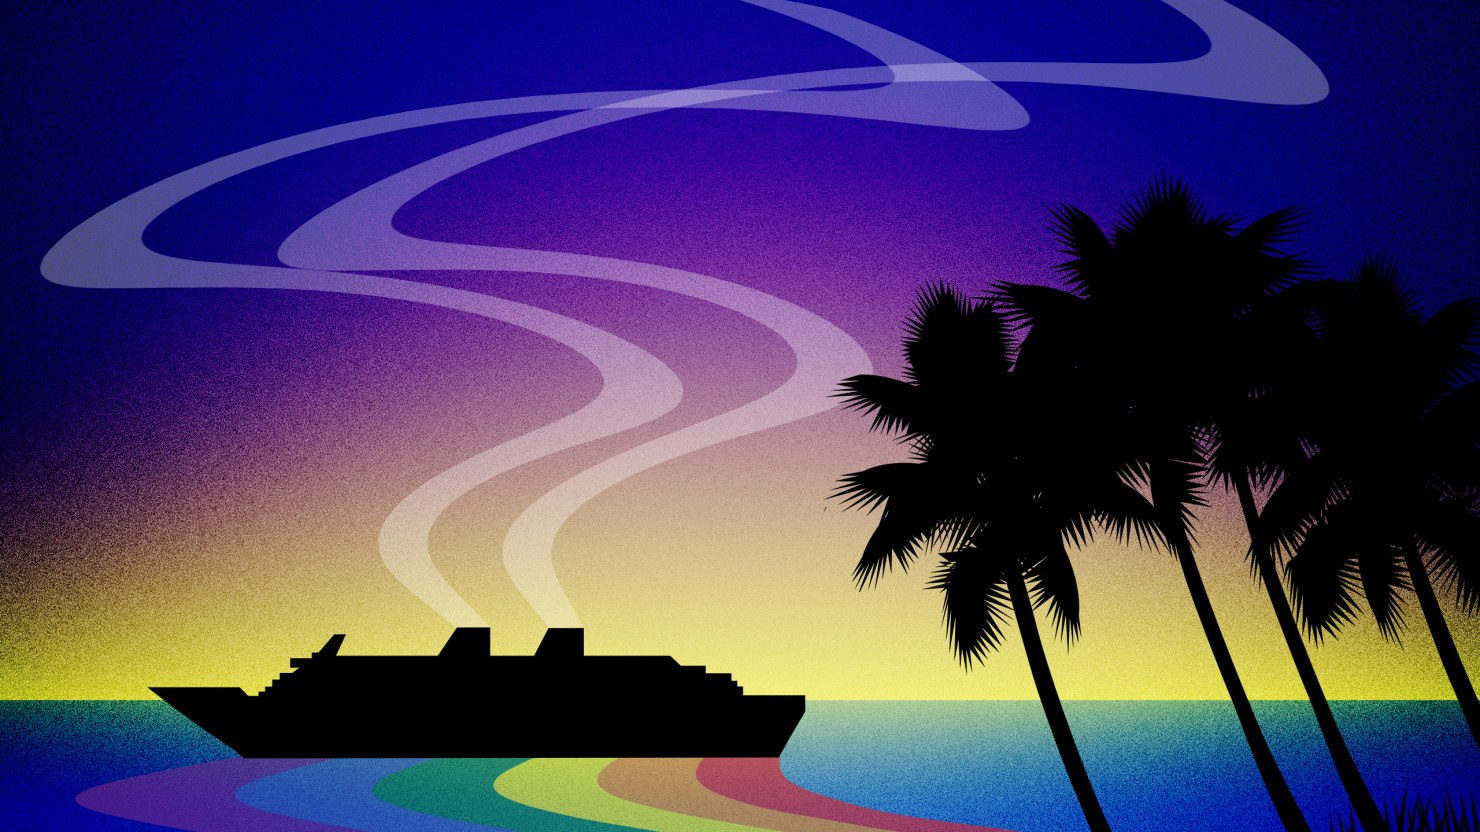 Cruise Ship Suicide or Homophobic Hate Crime?